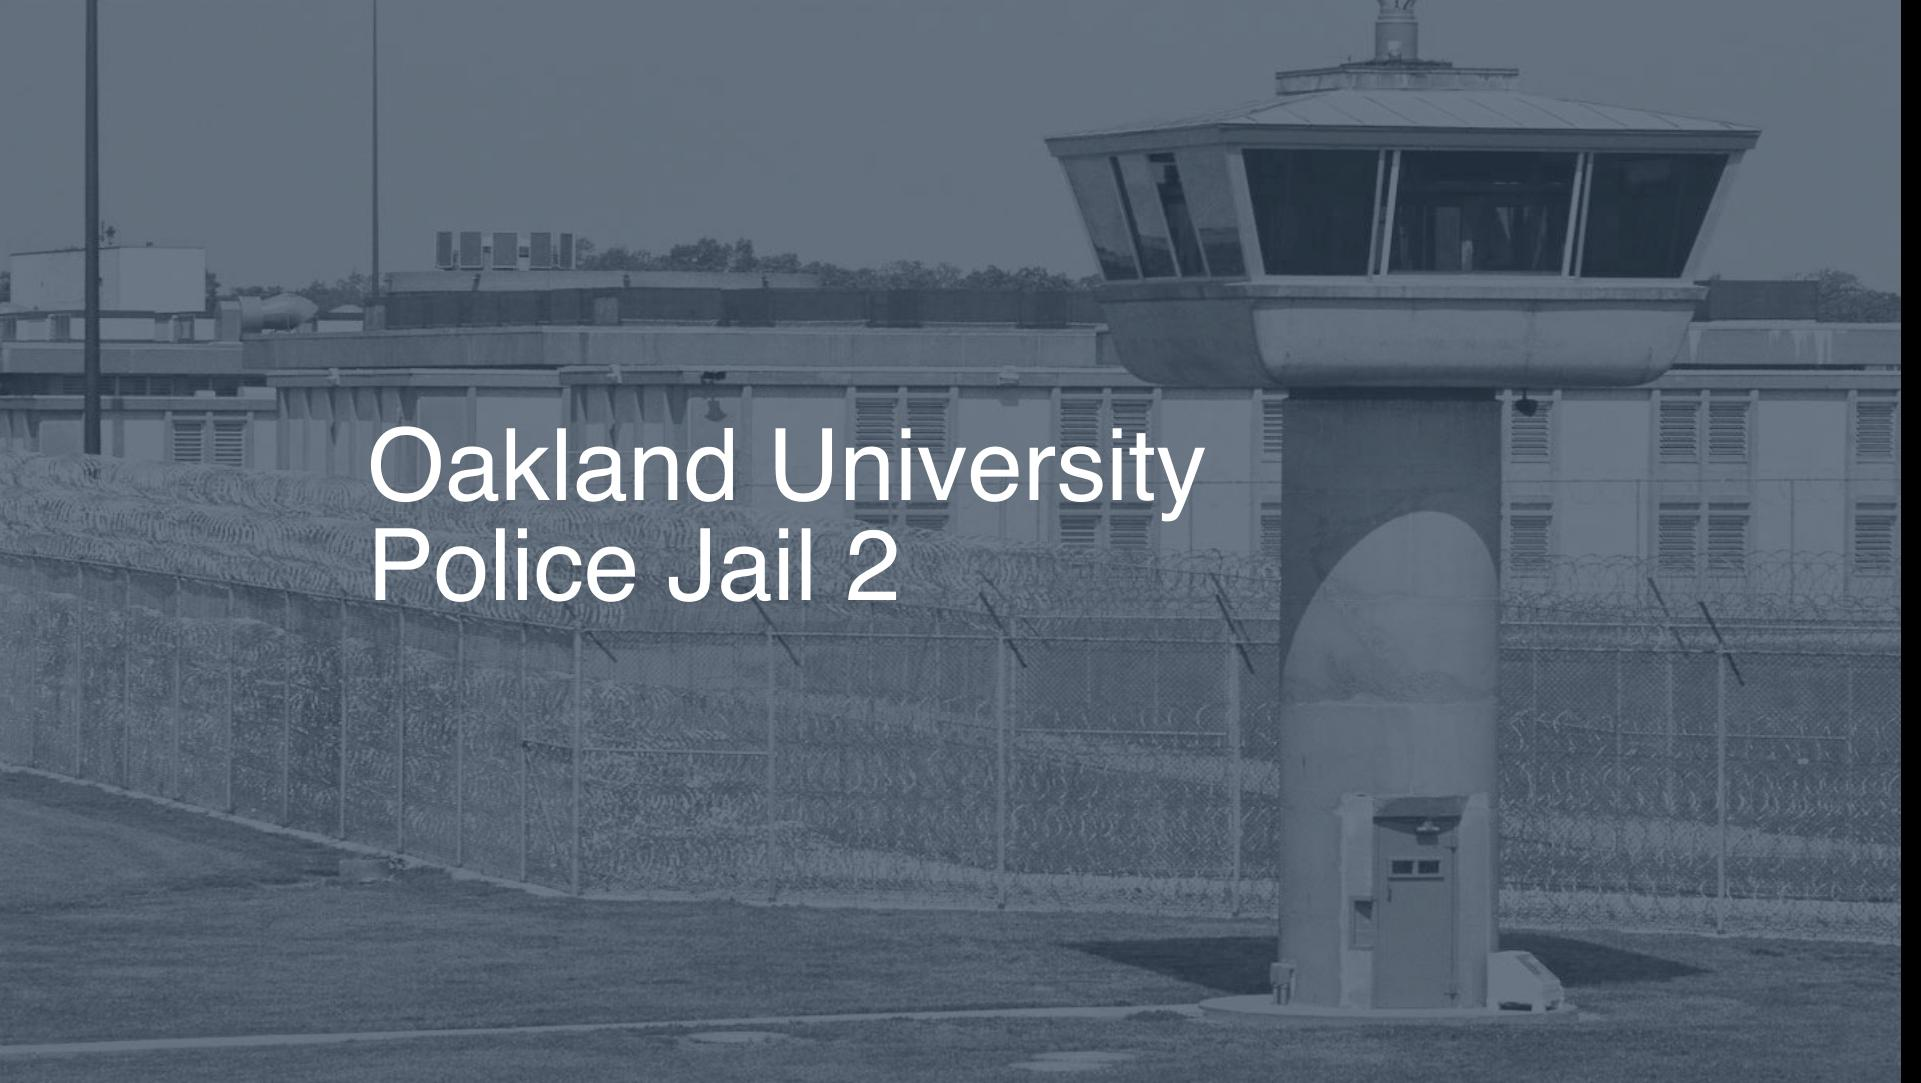 Oakland University Police Jail correctional facility picture